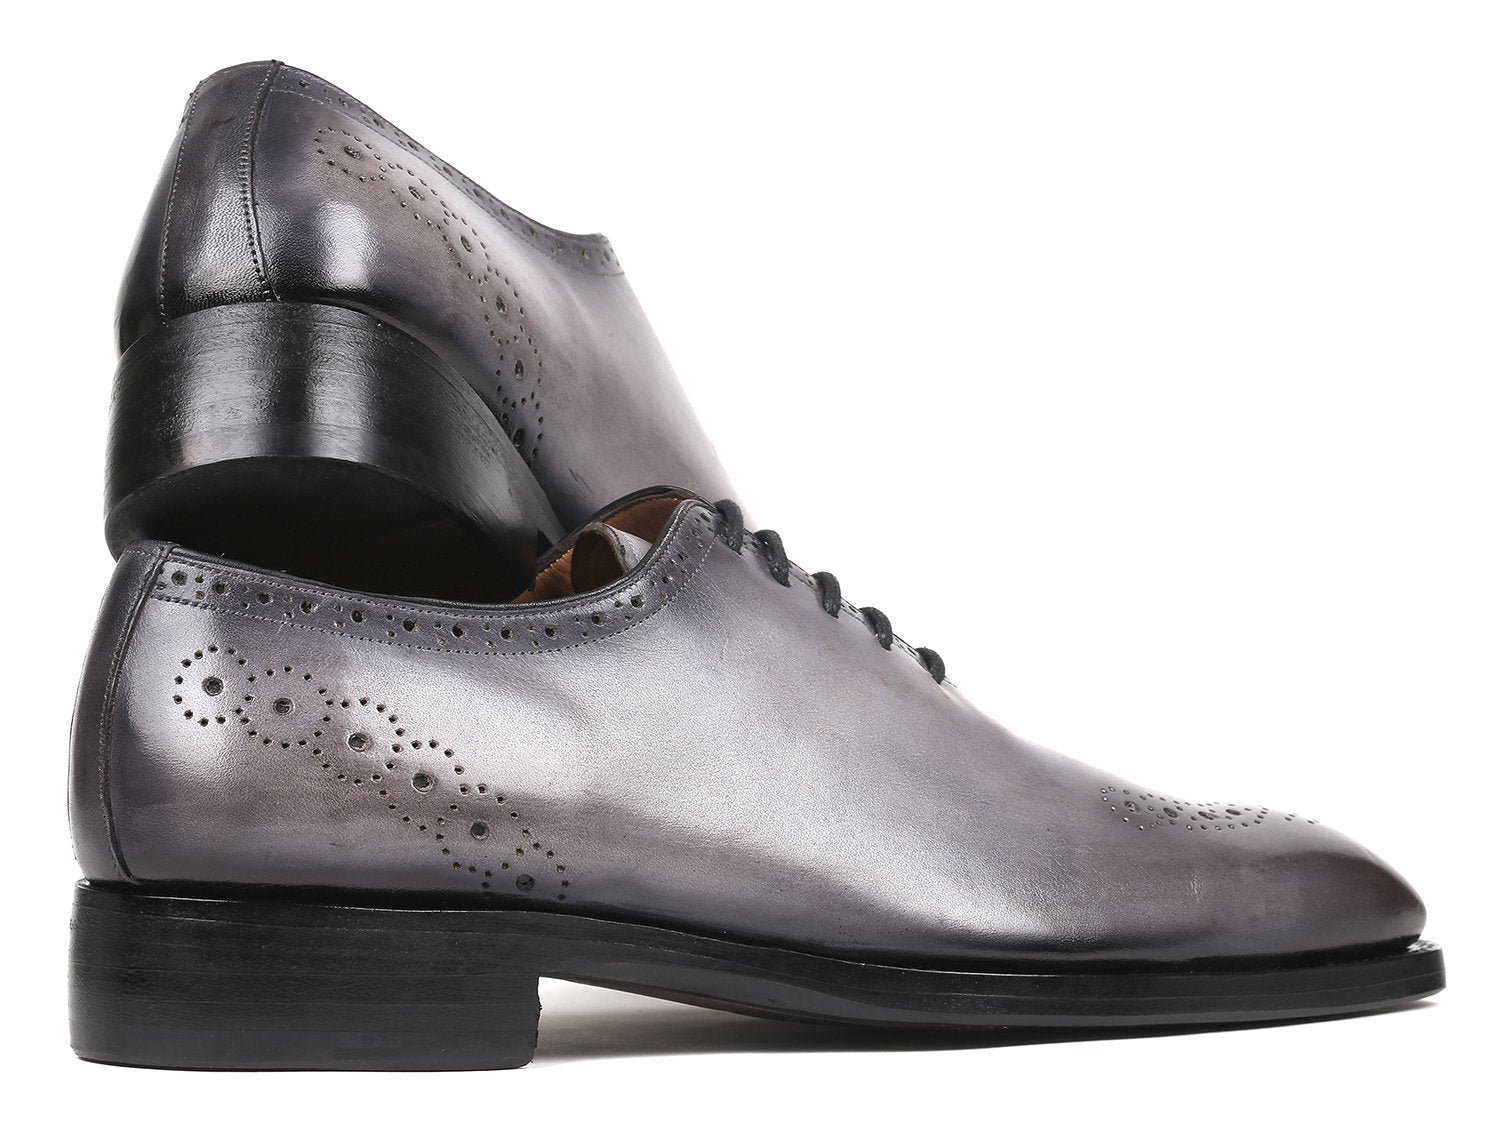 Paul Parkman Goodyear Welted Punched Oxfords Gray (ID#7614-GRY)